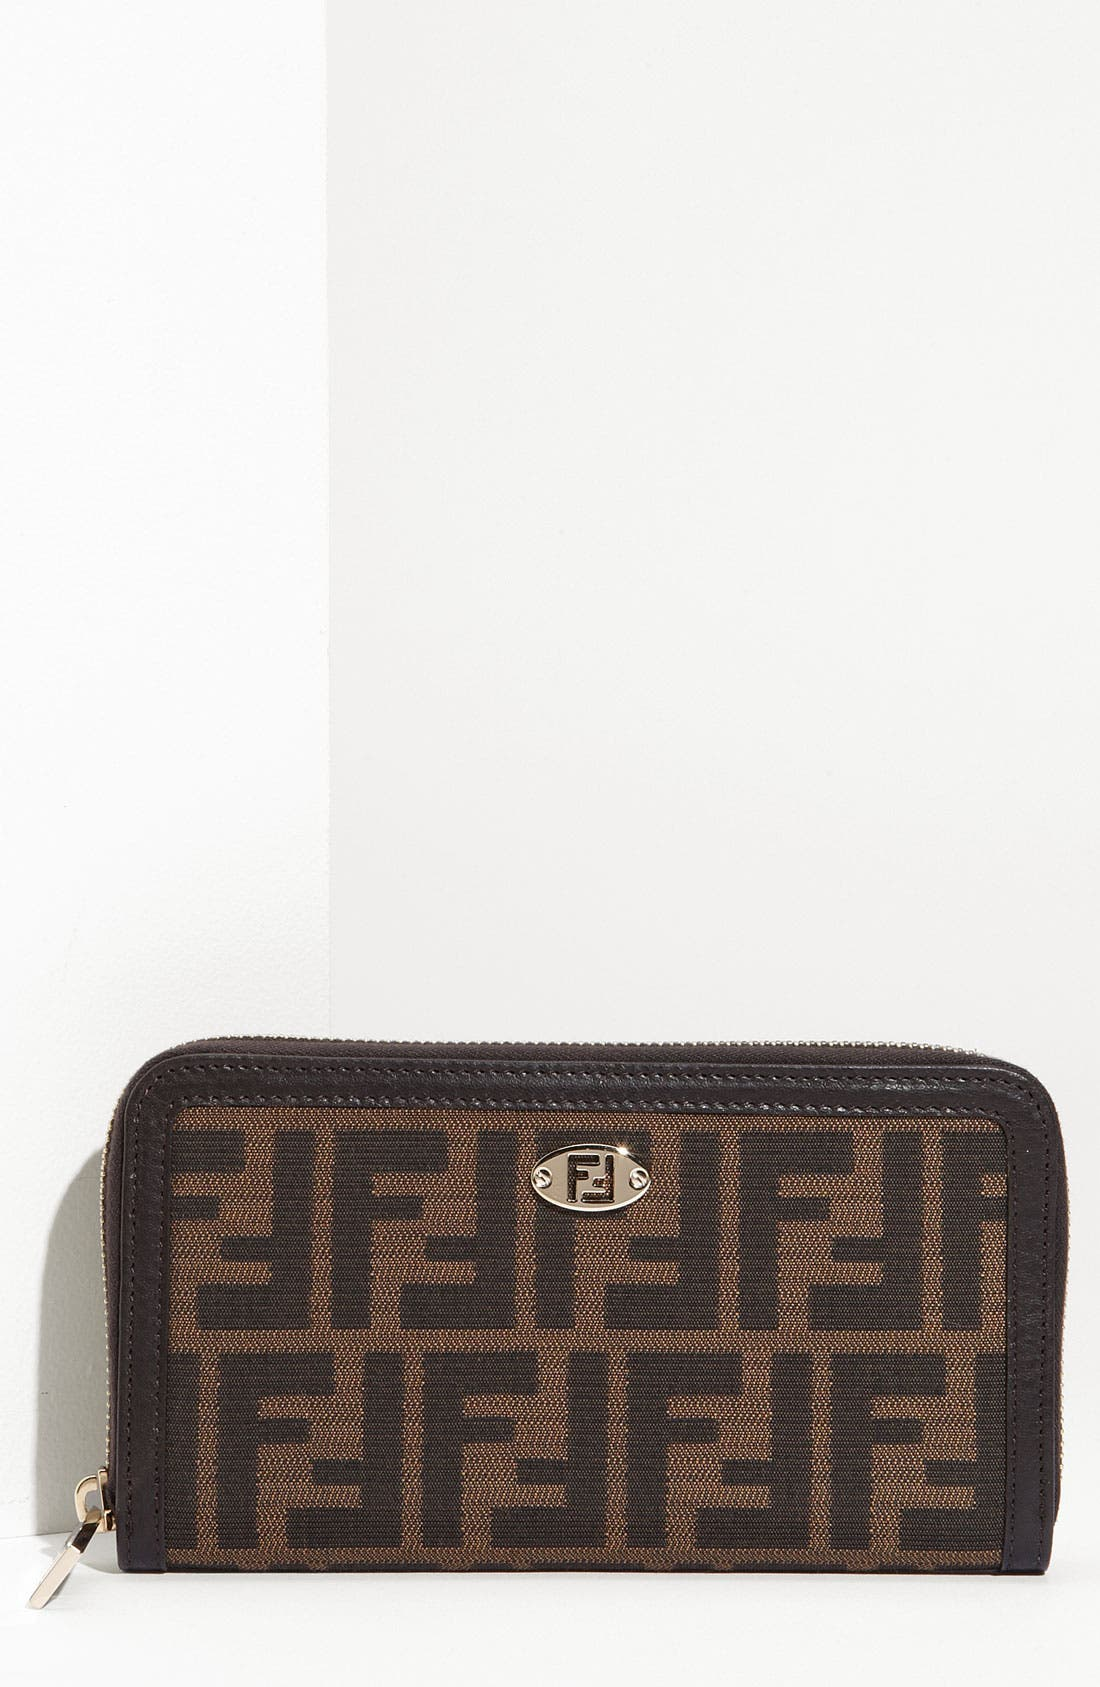 Main Image - Fendi 'Zucca' Zip Around Wallet